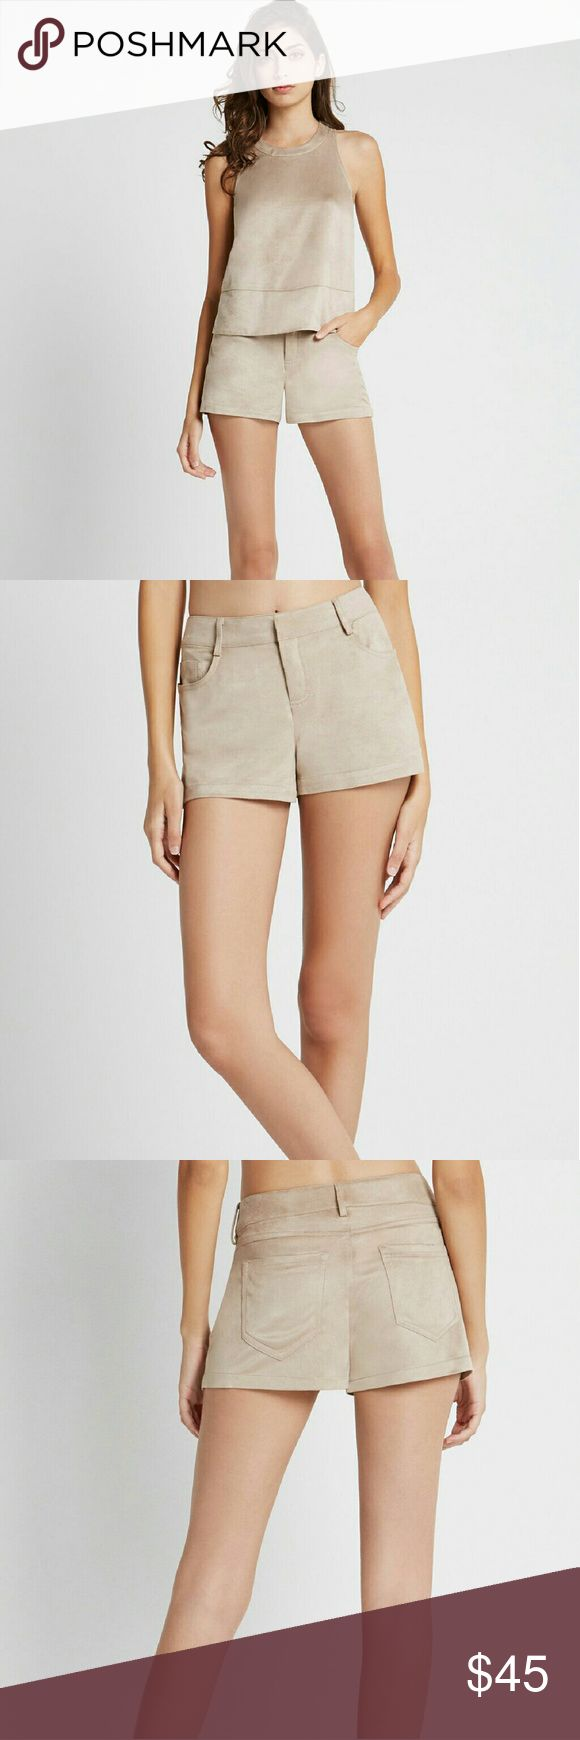 BCBGENERATION Faux Suede Short 12 Sand Sits at hips.  Banded waistline with belt hoops. Five pocket design. Center front zip with hook and eye closure. BCBGeneration Shorts